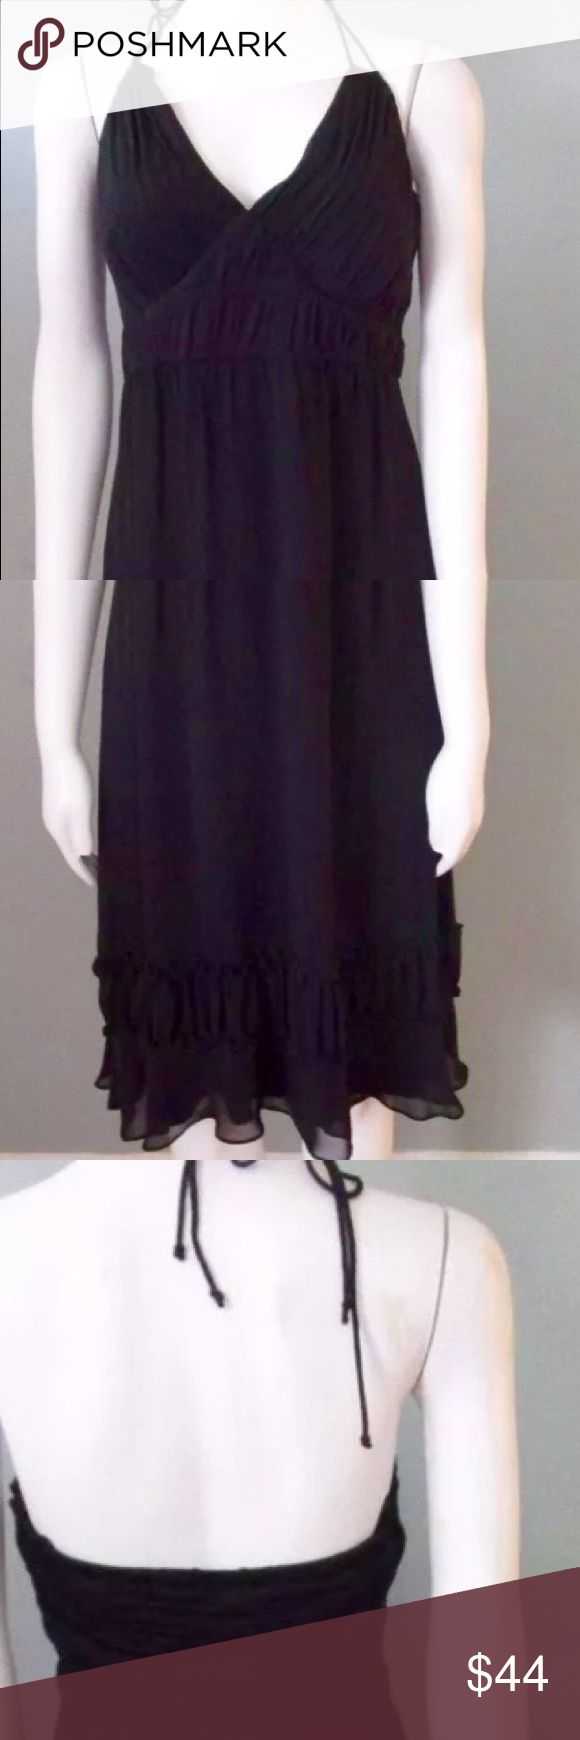 Little black Dress - Halter dress Size 14 Large Little black Dress - Halter dress Size 14 Large. Halter dress with sheer accent along the bottom. Dresses